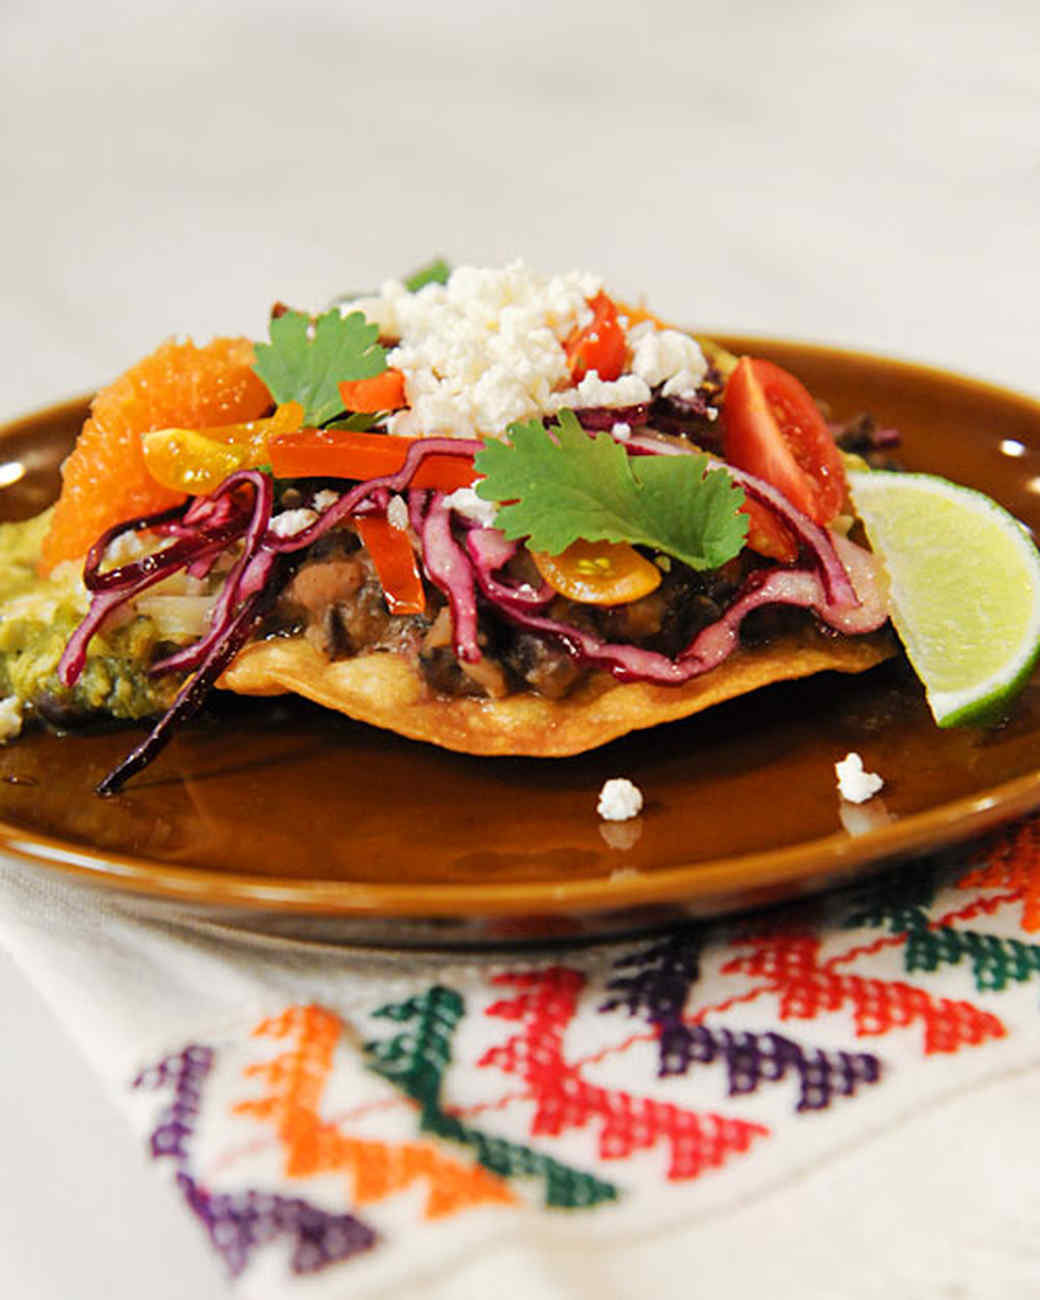 Chicken Tomatillo Tostadas with Refried Black Beans and Cabbage-Pepper Slaw